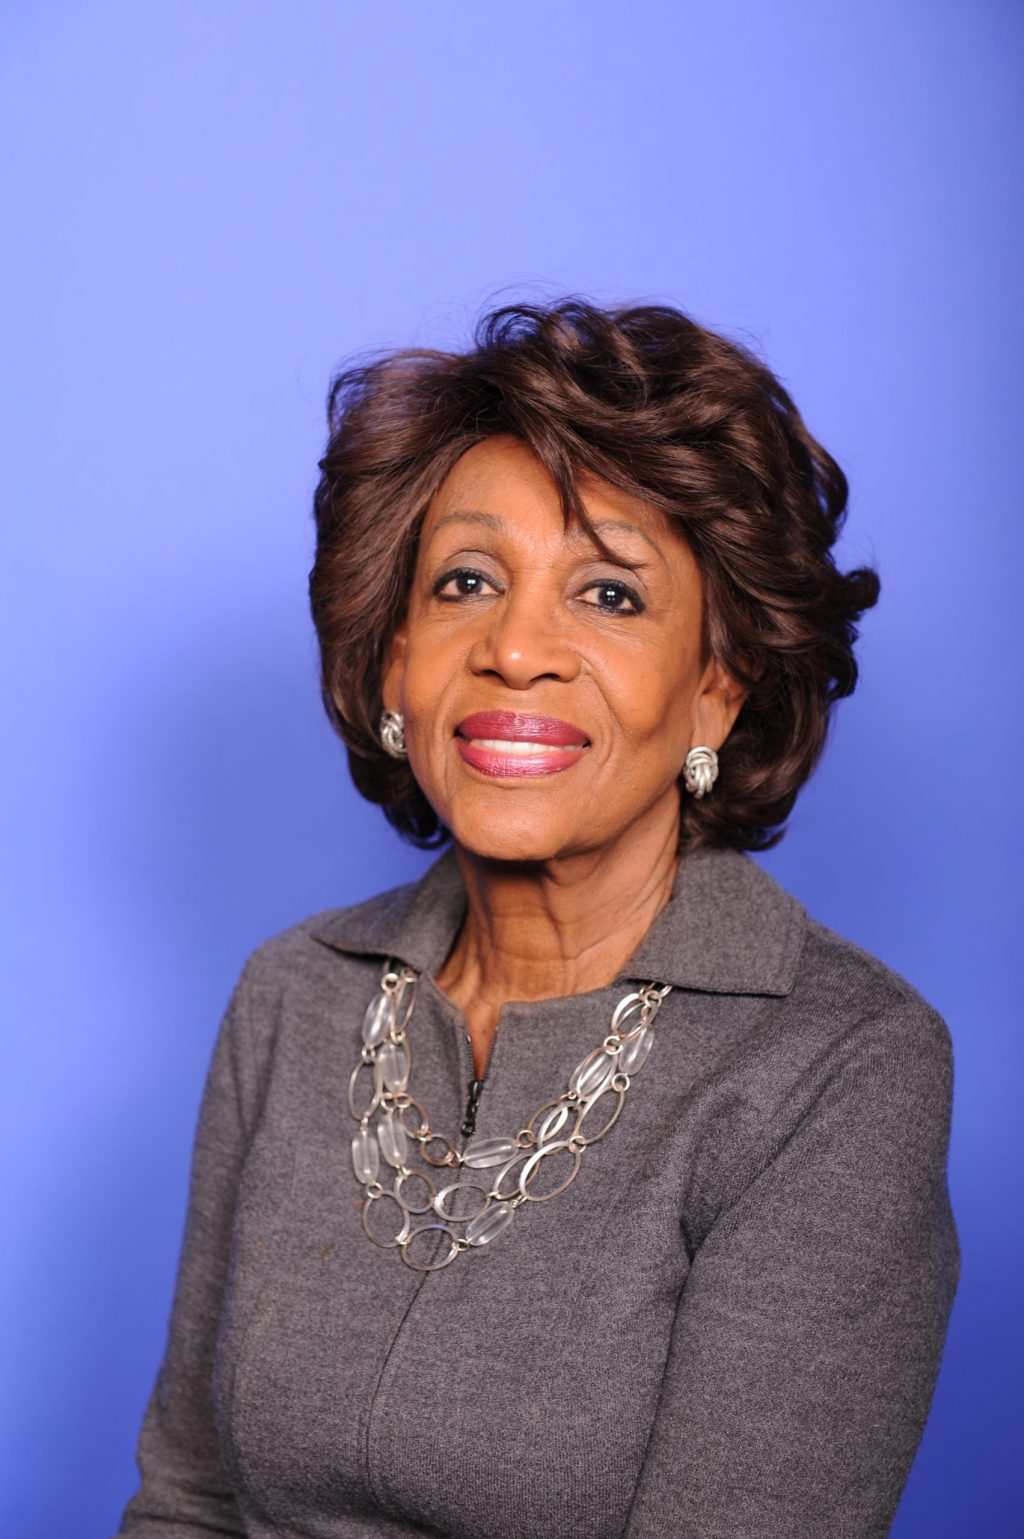 Rep. Waters' Statement on Shooting of Another Unarmed Black Man Jacob Blake